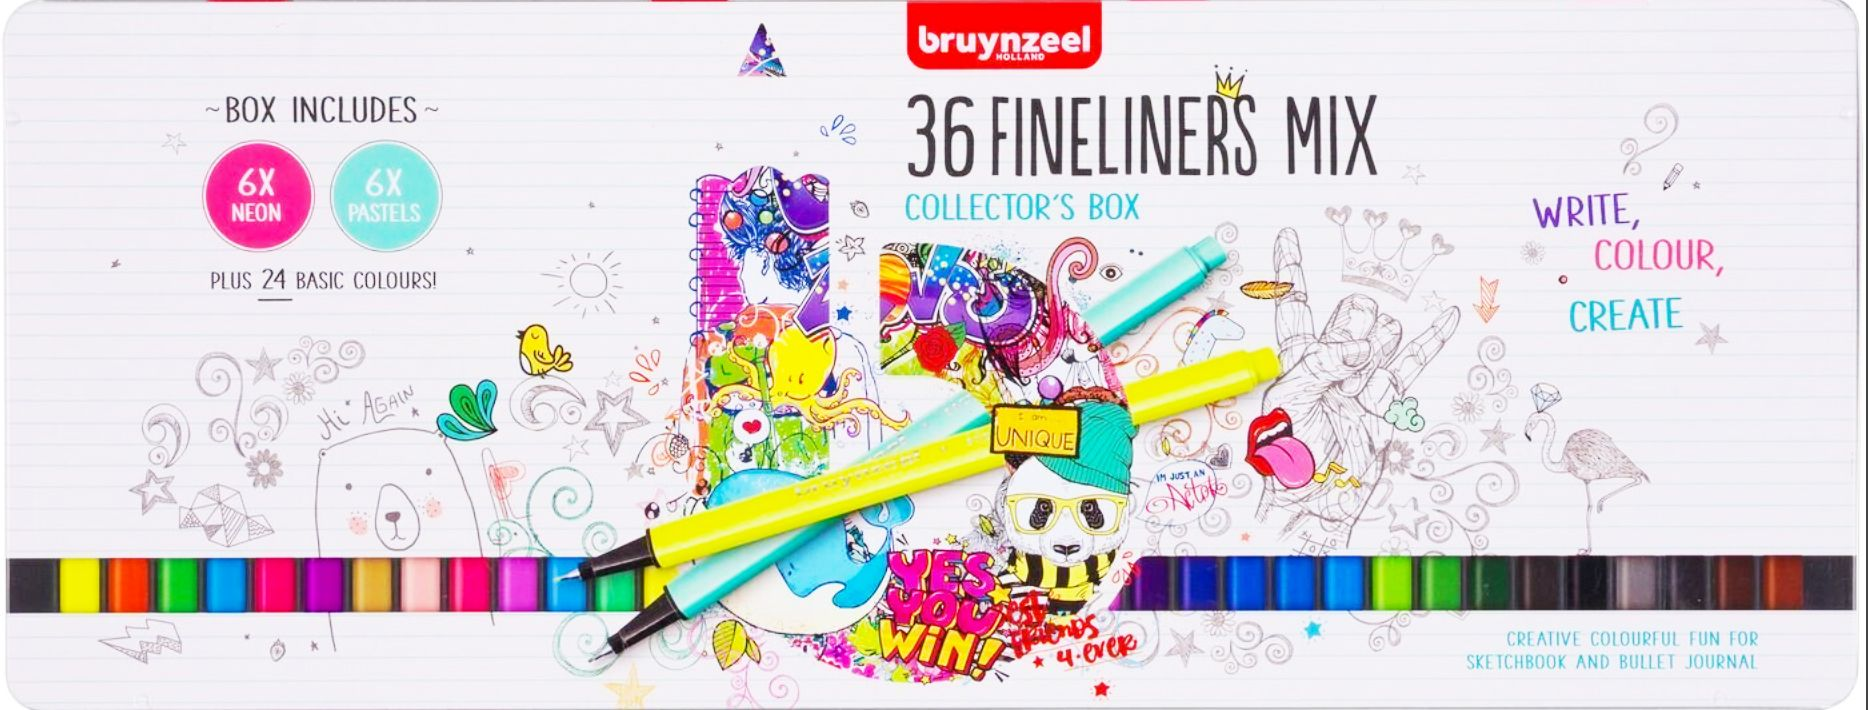 Bruynzeel - 36 Fineliners Mix - Collectors Box - Creative Colouring